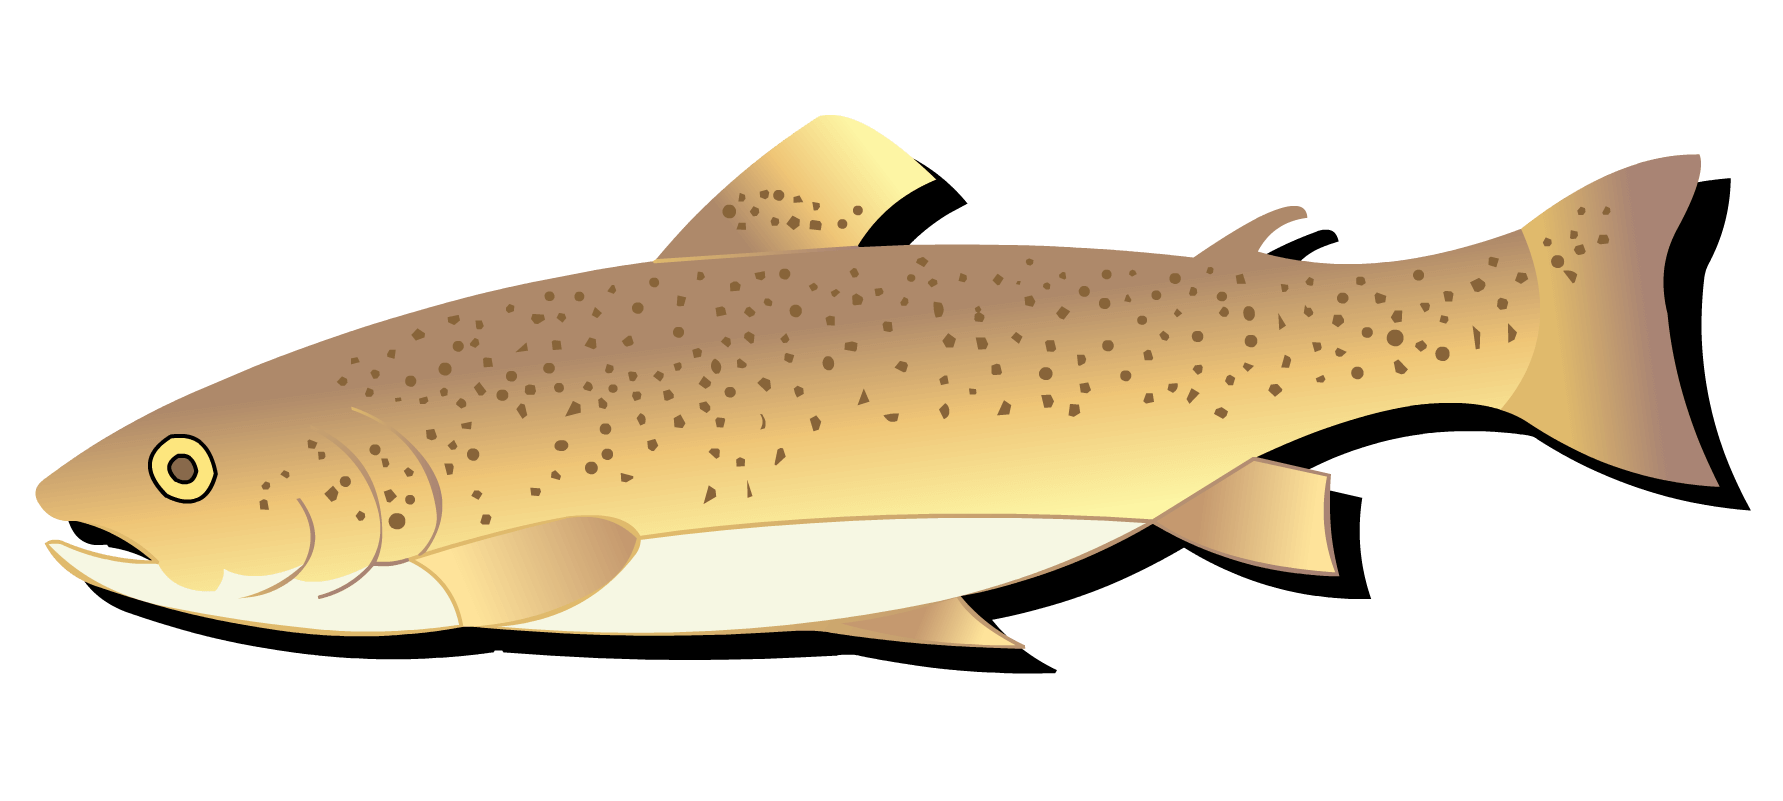 Salmon clipart cutthroat trout. Responsible fishing in western